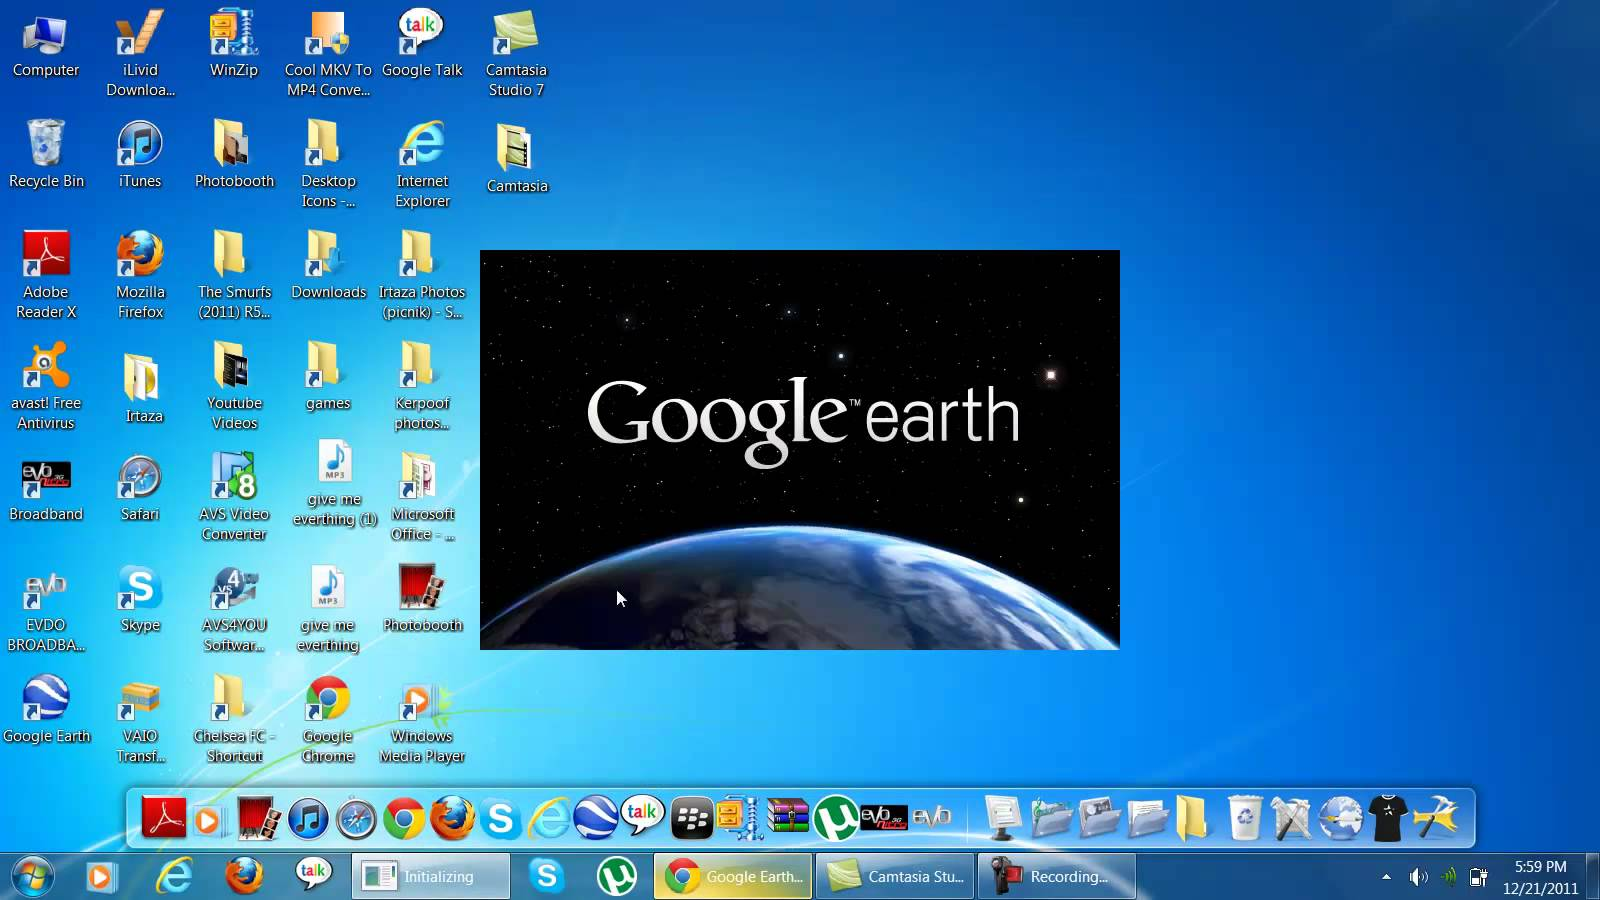 Google Earth Wallpaper Download